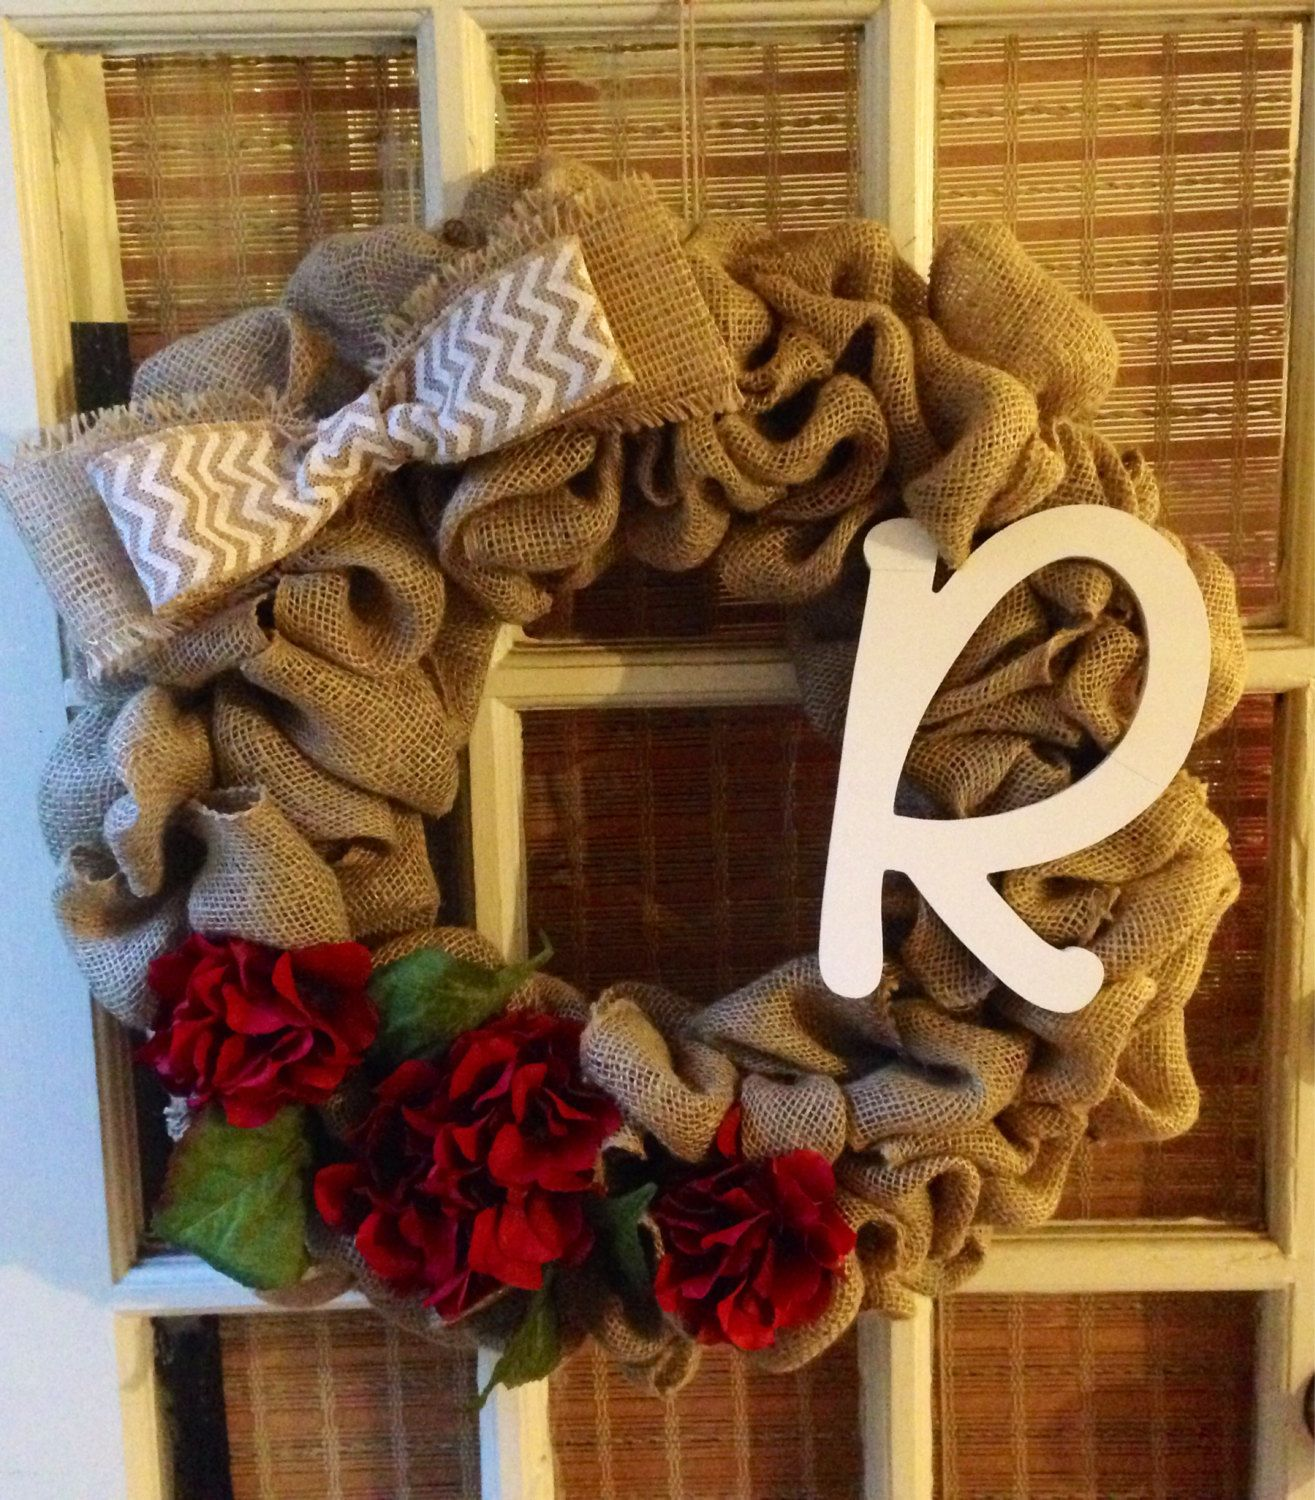 Burlap Initial Wreath by TheFrolickyFrog on Etsy